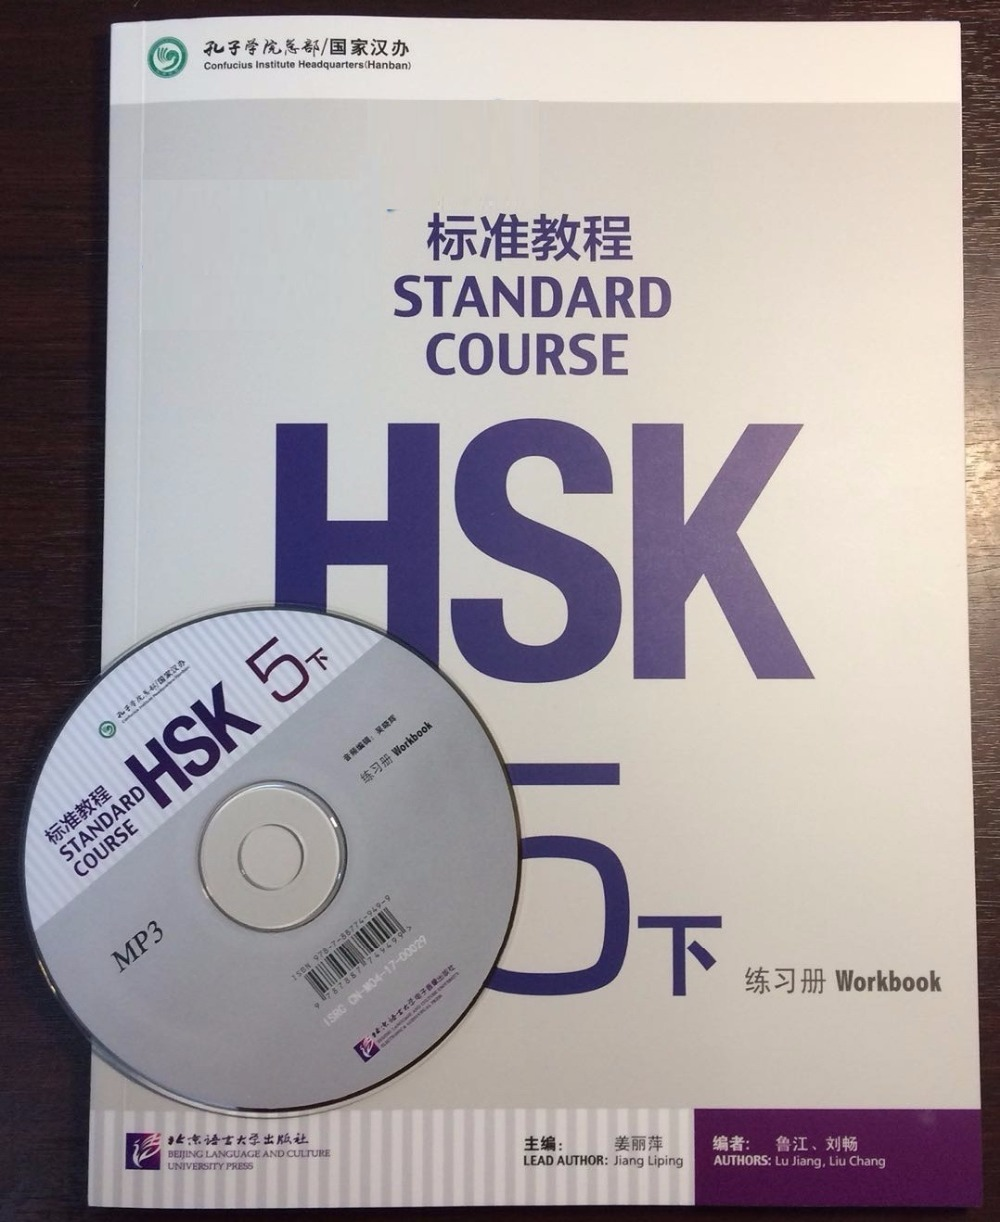 Chinese English exercise book HSK students workbook :Standard Course HSK 5B (with CD) 2pcs chinese english bilingual exercise book hsk students workbook and textbook standard course hsk 4b